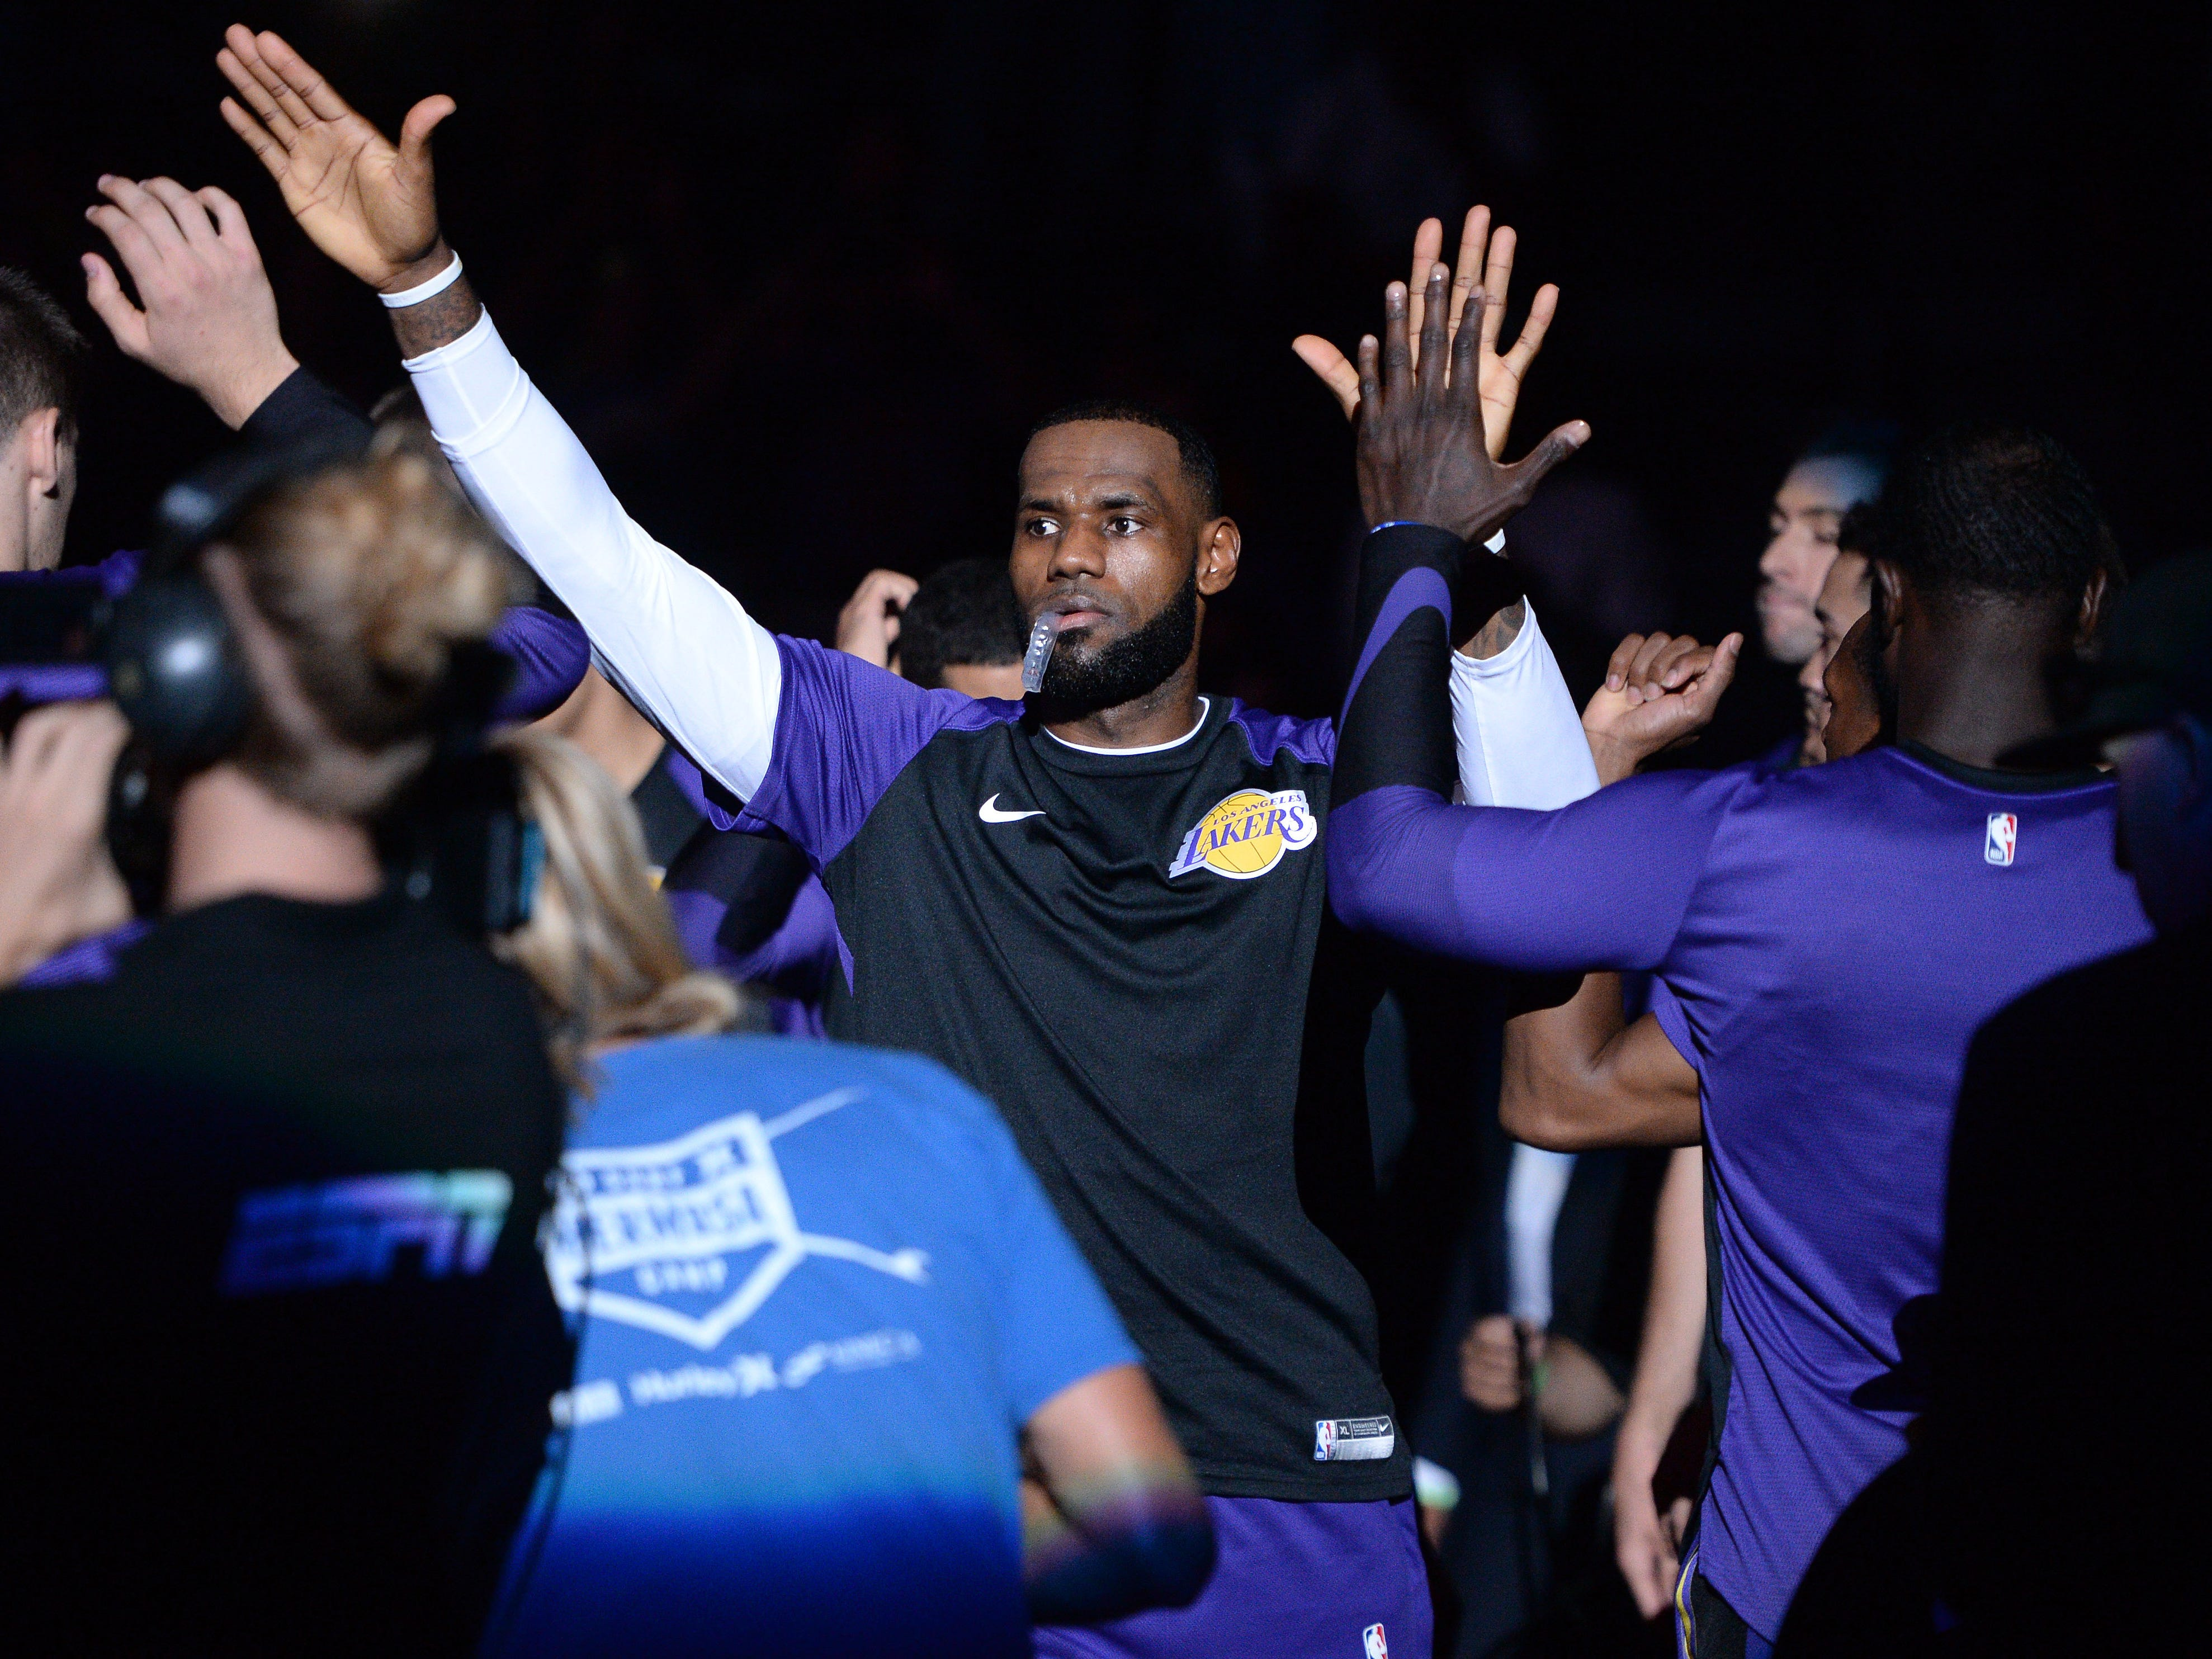 Sept. 30, 2018: LeBron James takes the floor for his Lakers preseason debut against the Nuggets in San Diego.